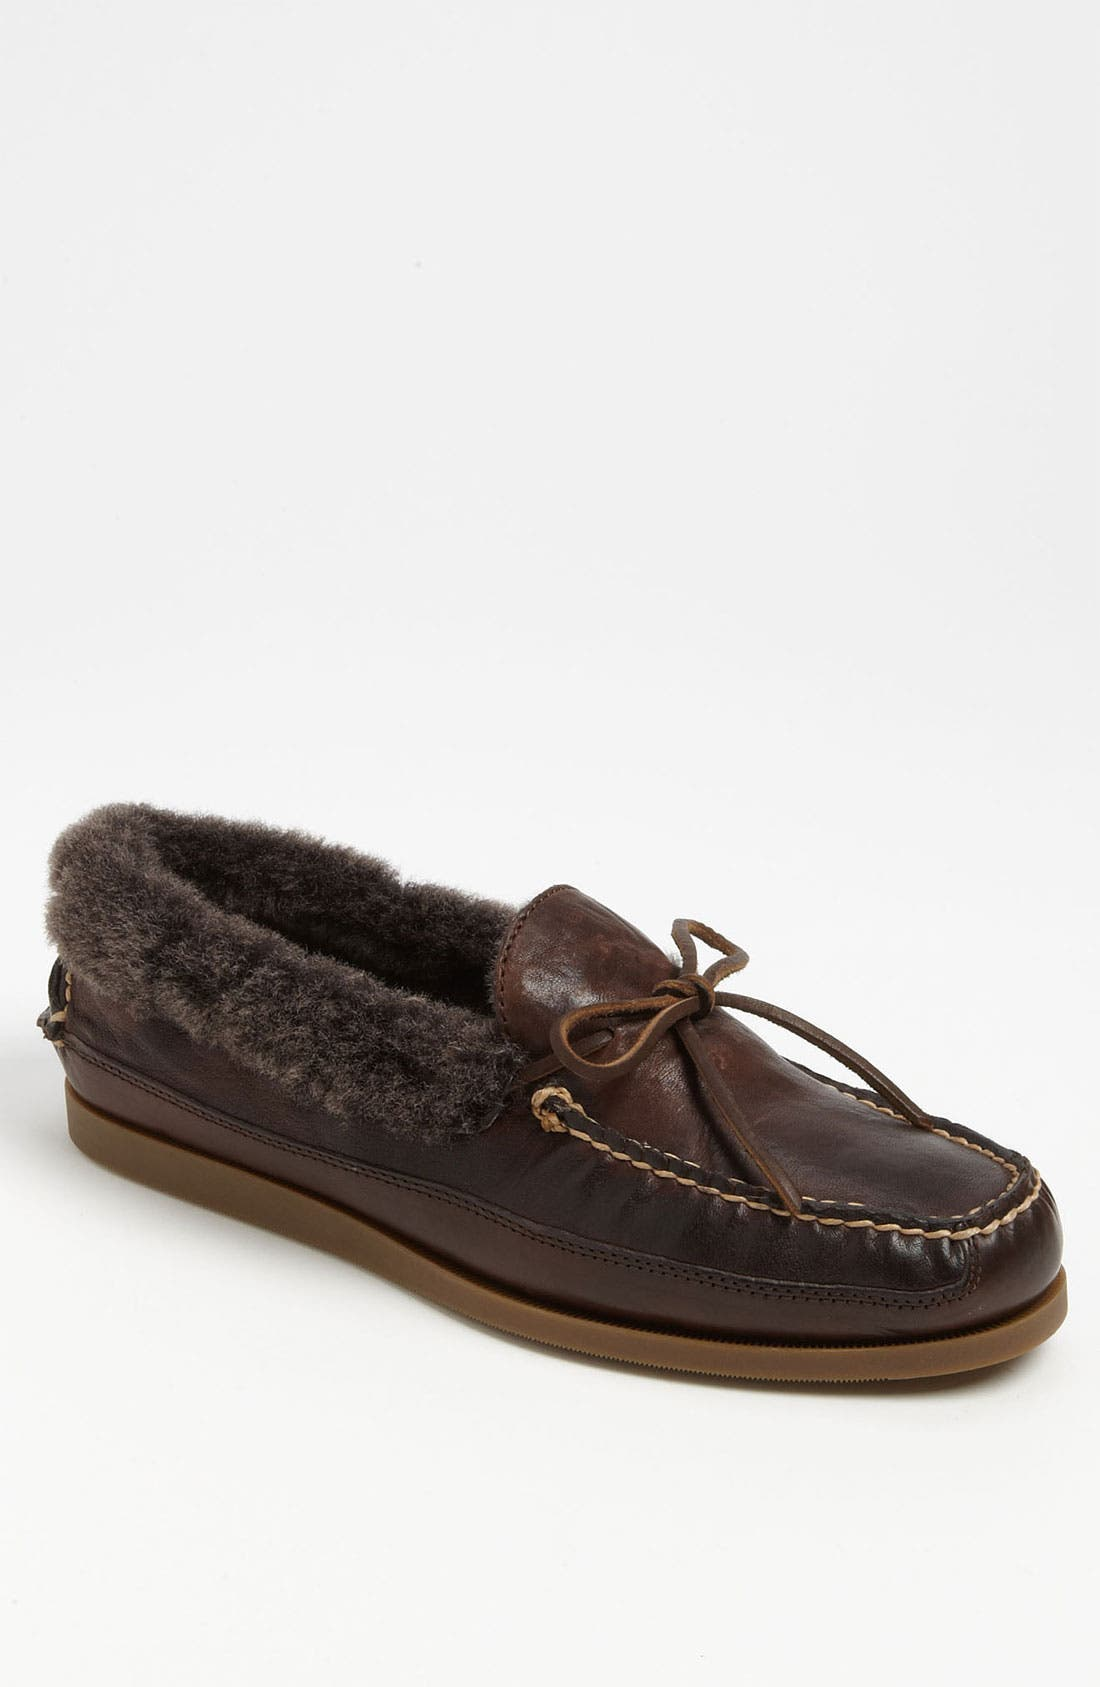 Main Image - Frye 'Homer' Slipper